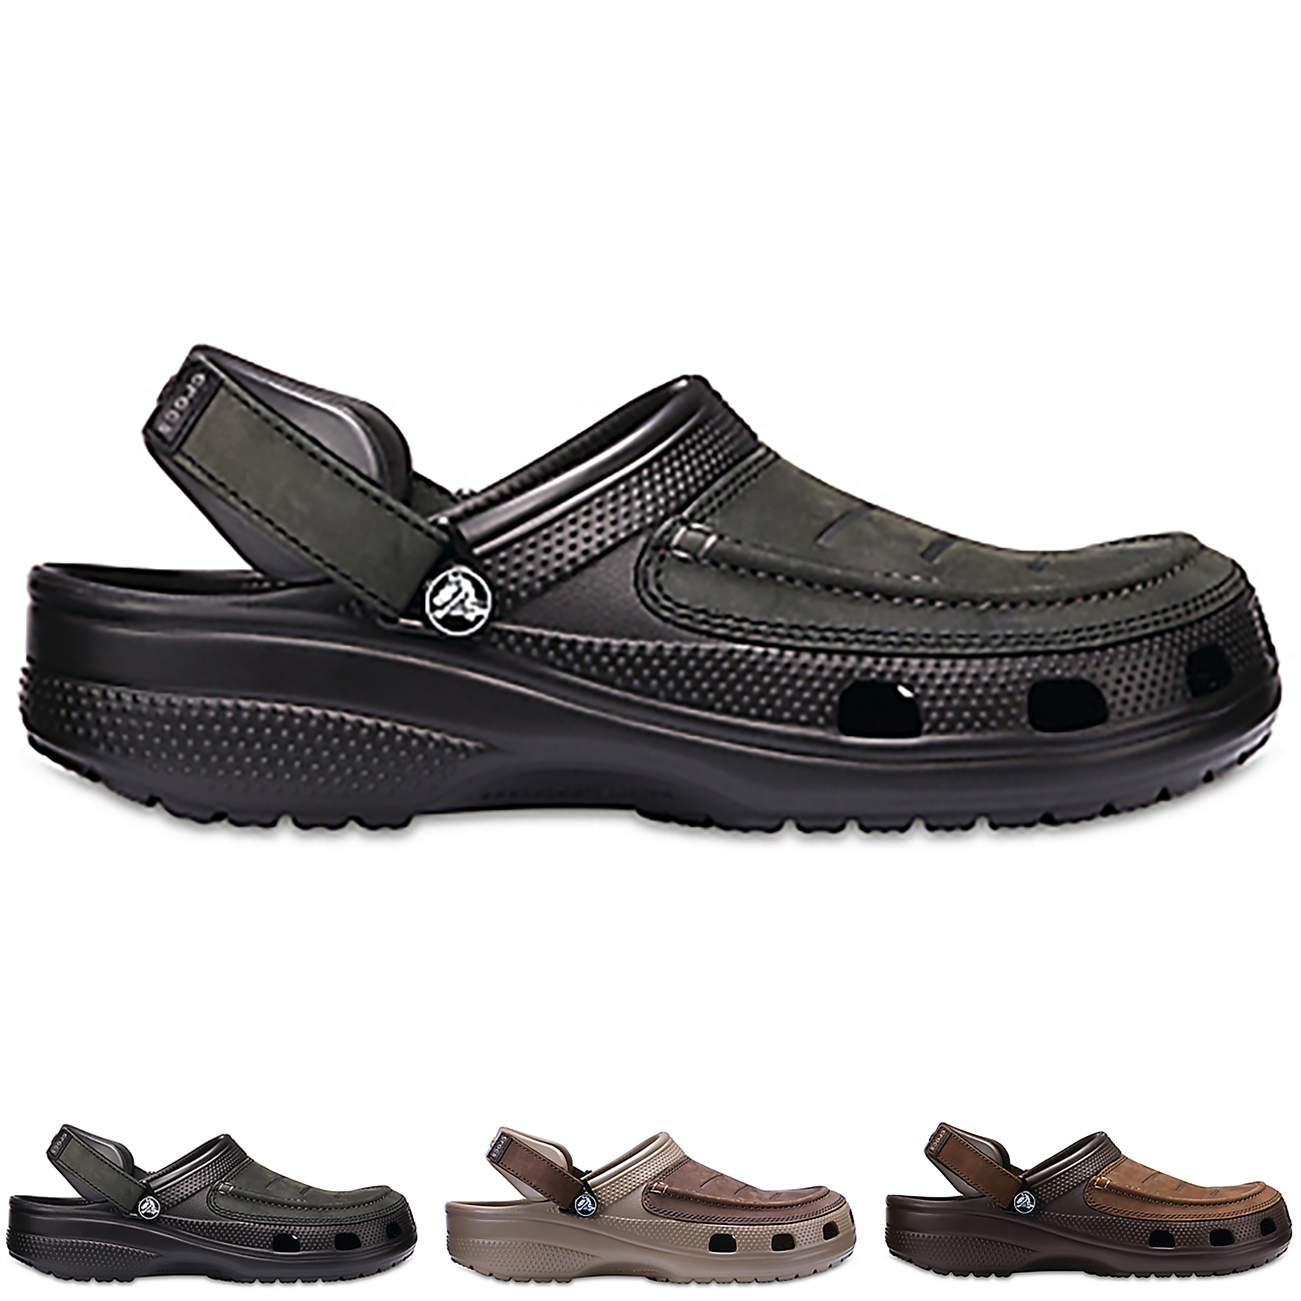 26f5afd37dc8 Image is loading Mens-Crocs-Yukon-Vista-Clog-Holiday-Leather-Rubber-